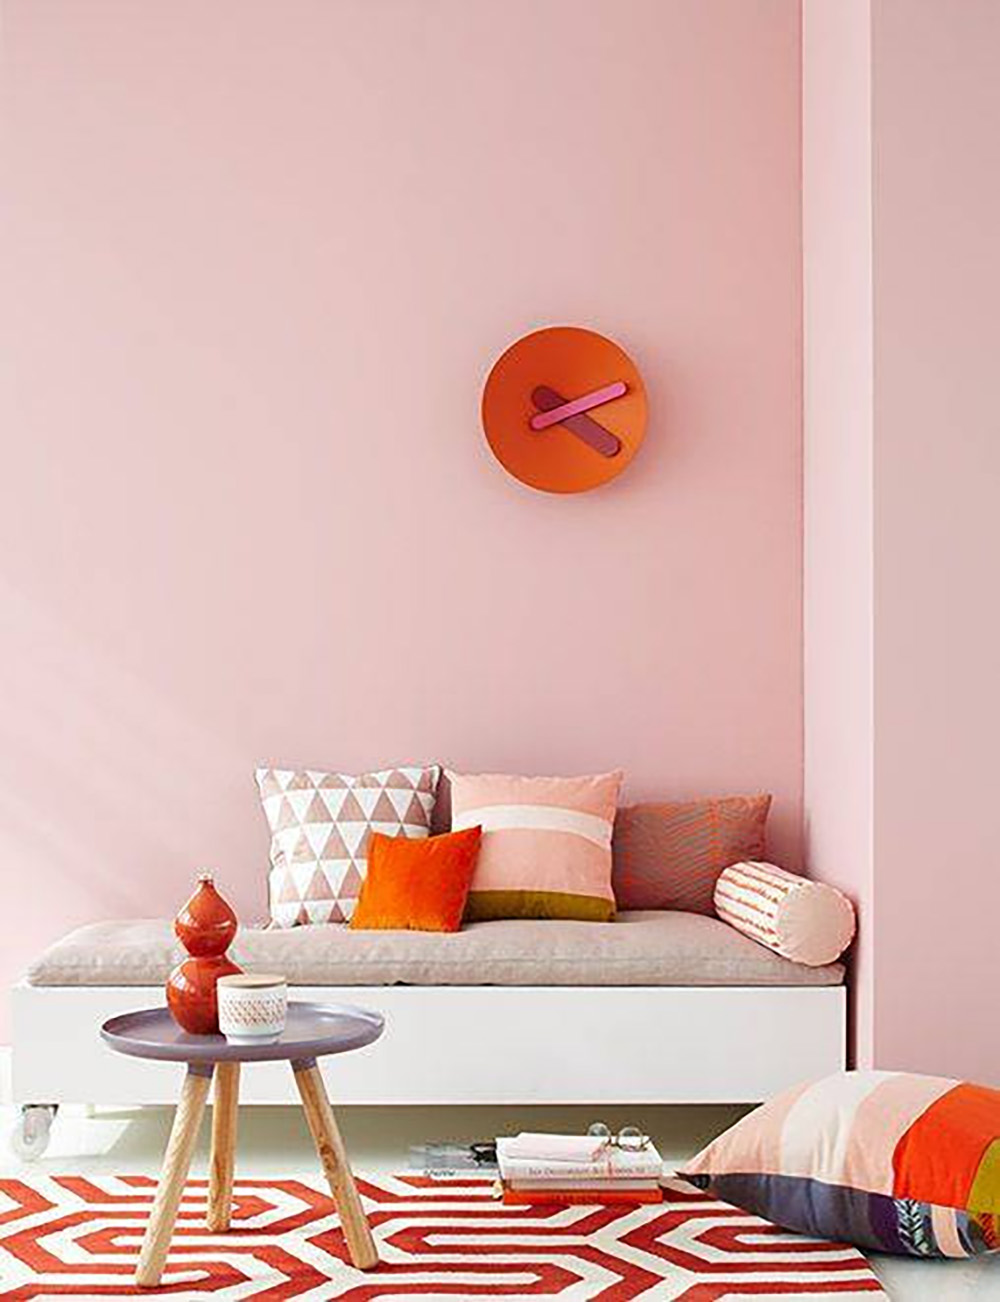 So Fresh & So Chic // Pink and Red Interiors // Pale pink walls with red accents